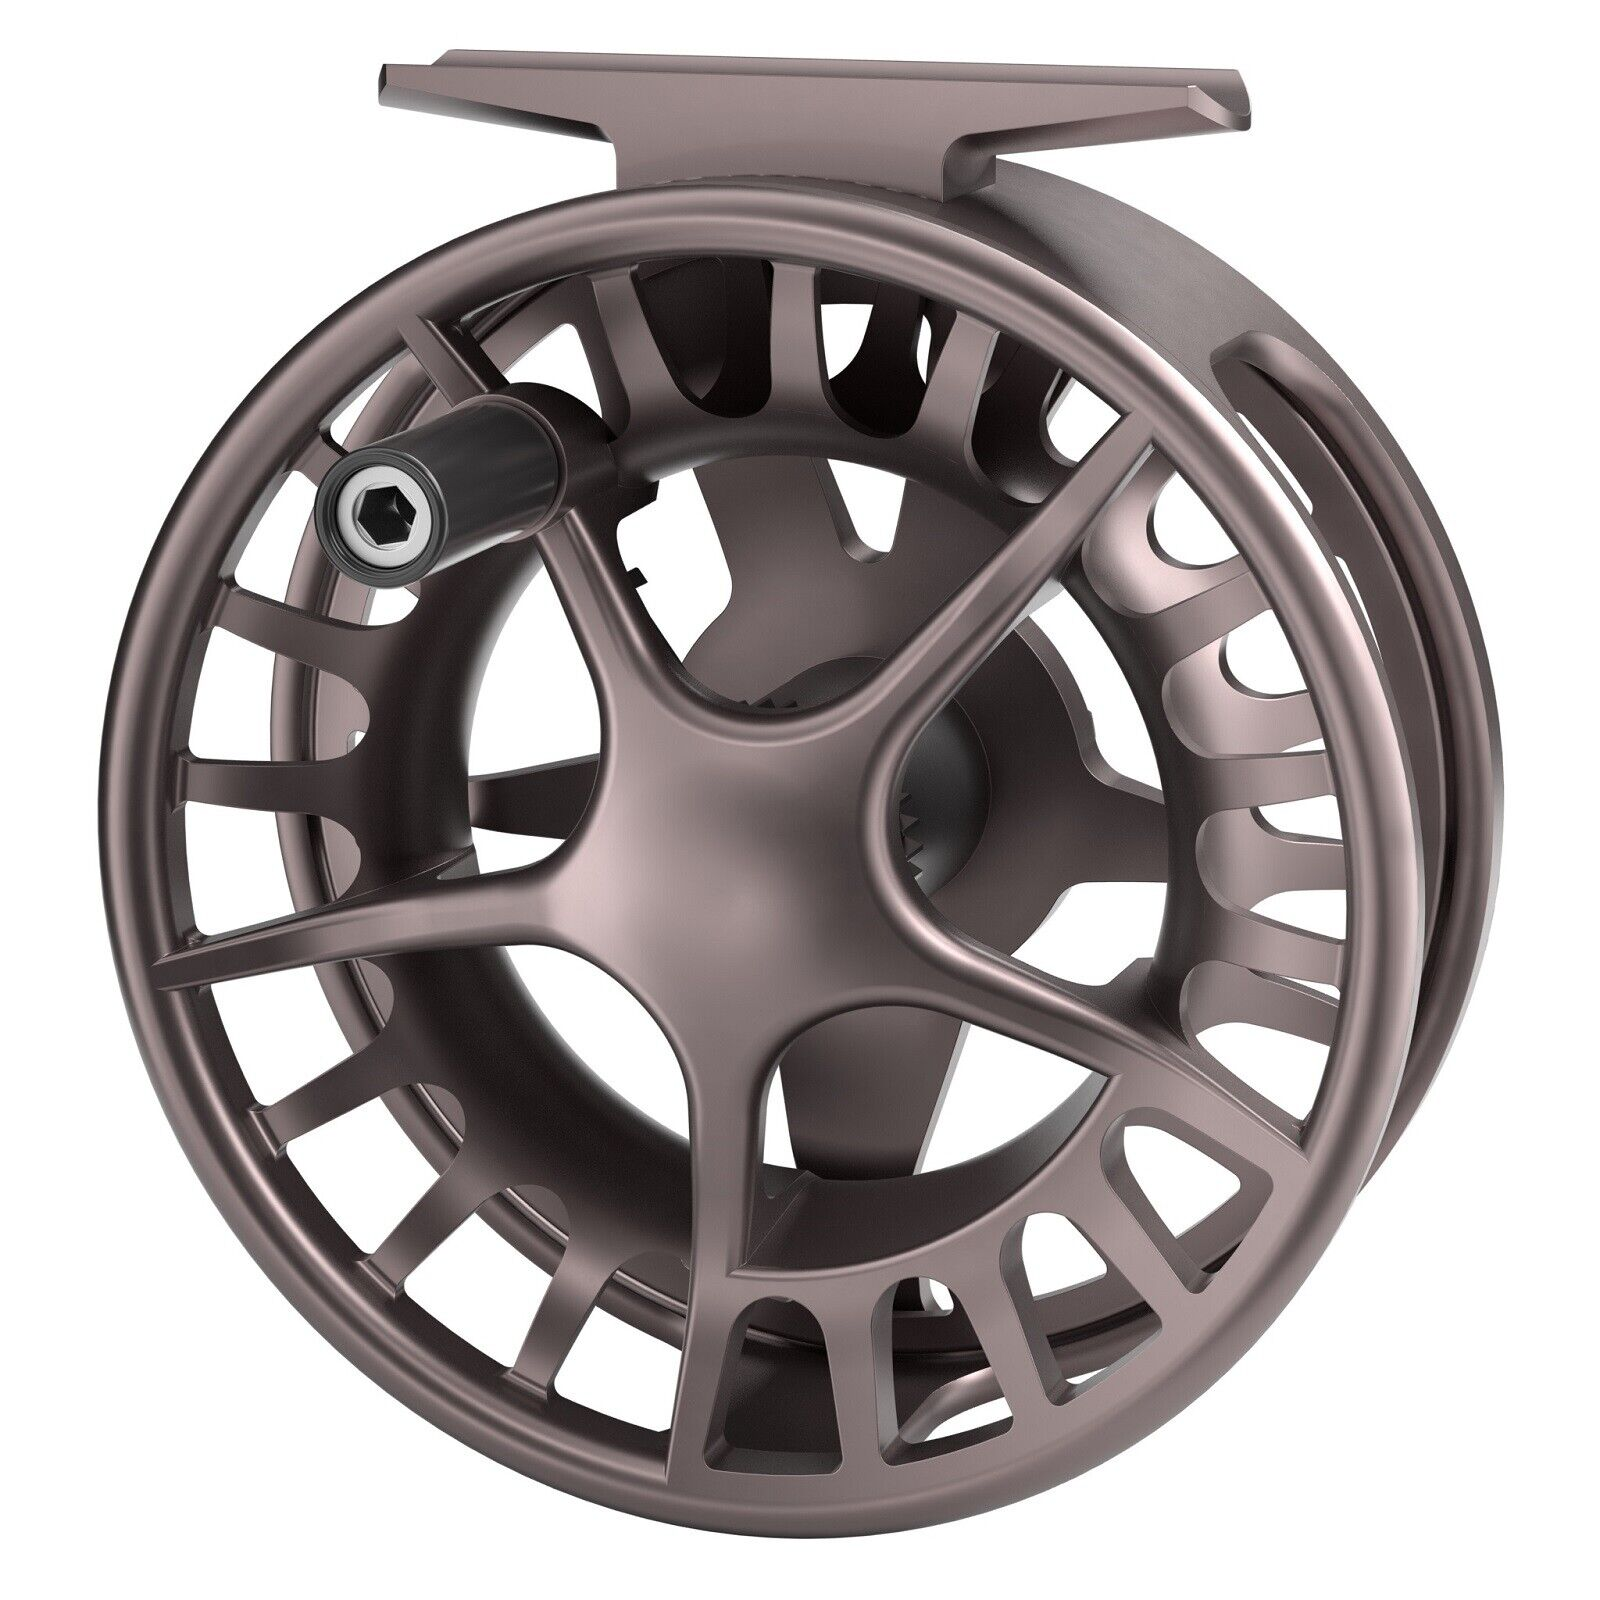 Lamson Remix 9+ Fly Reel - Farbe Smoke - NEW